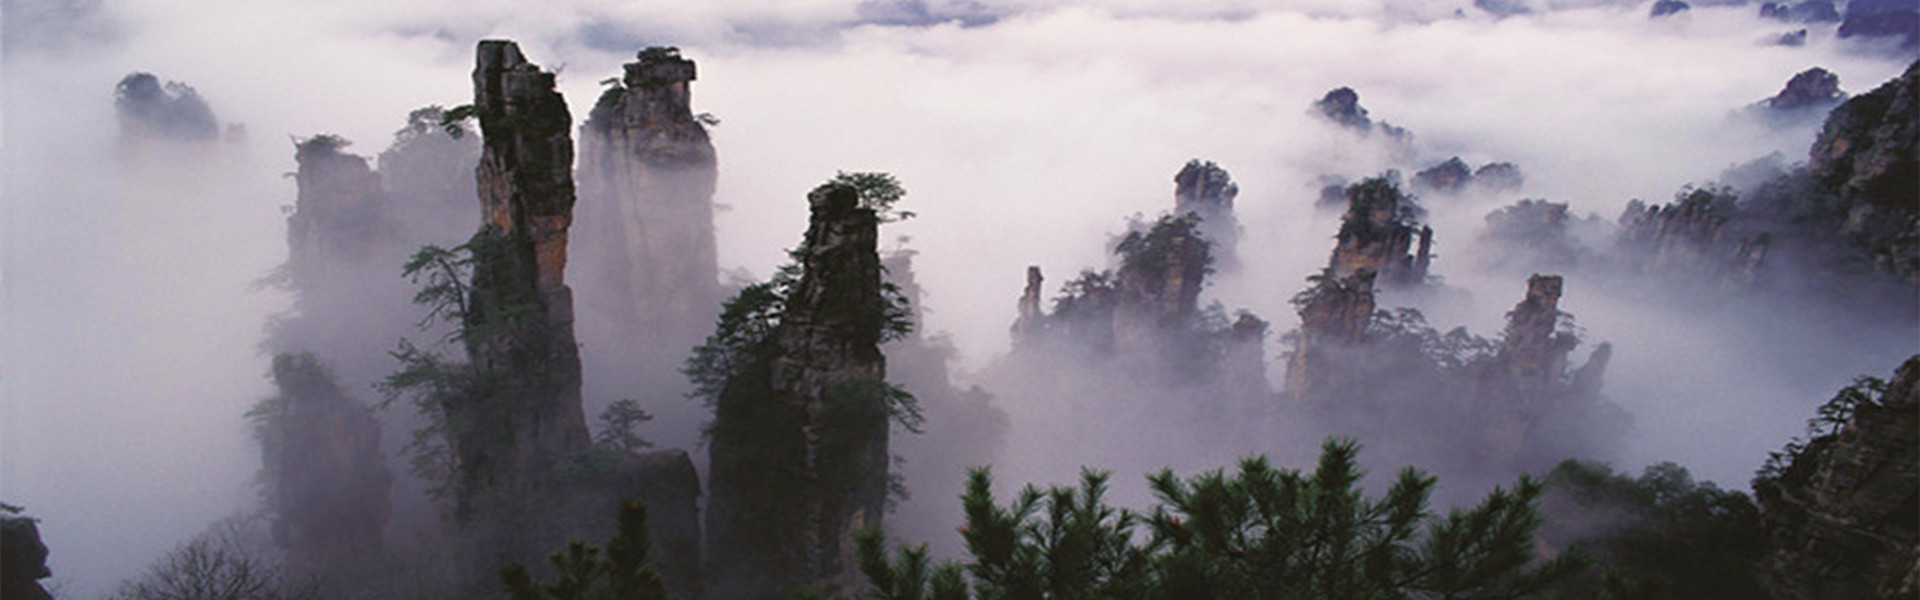 5 Days Zhangjiajie Avatar Tour